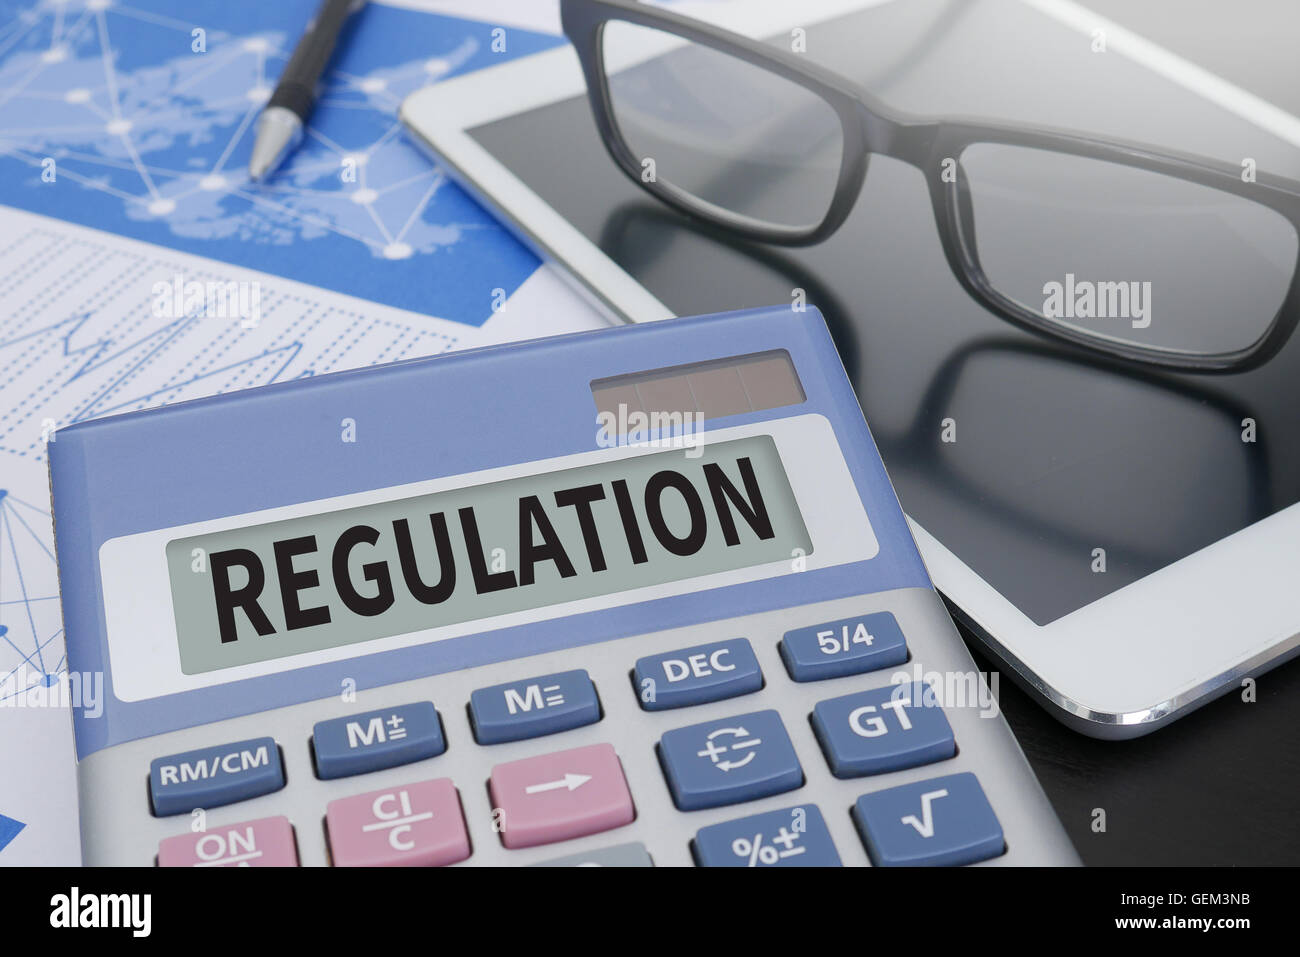 REGULATION Calculator  on table with Office Supplies. ipad - Stock Image